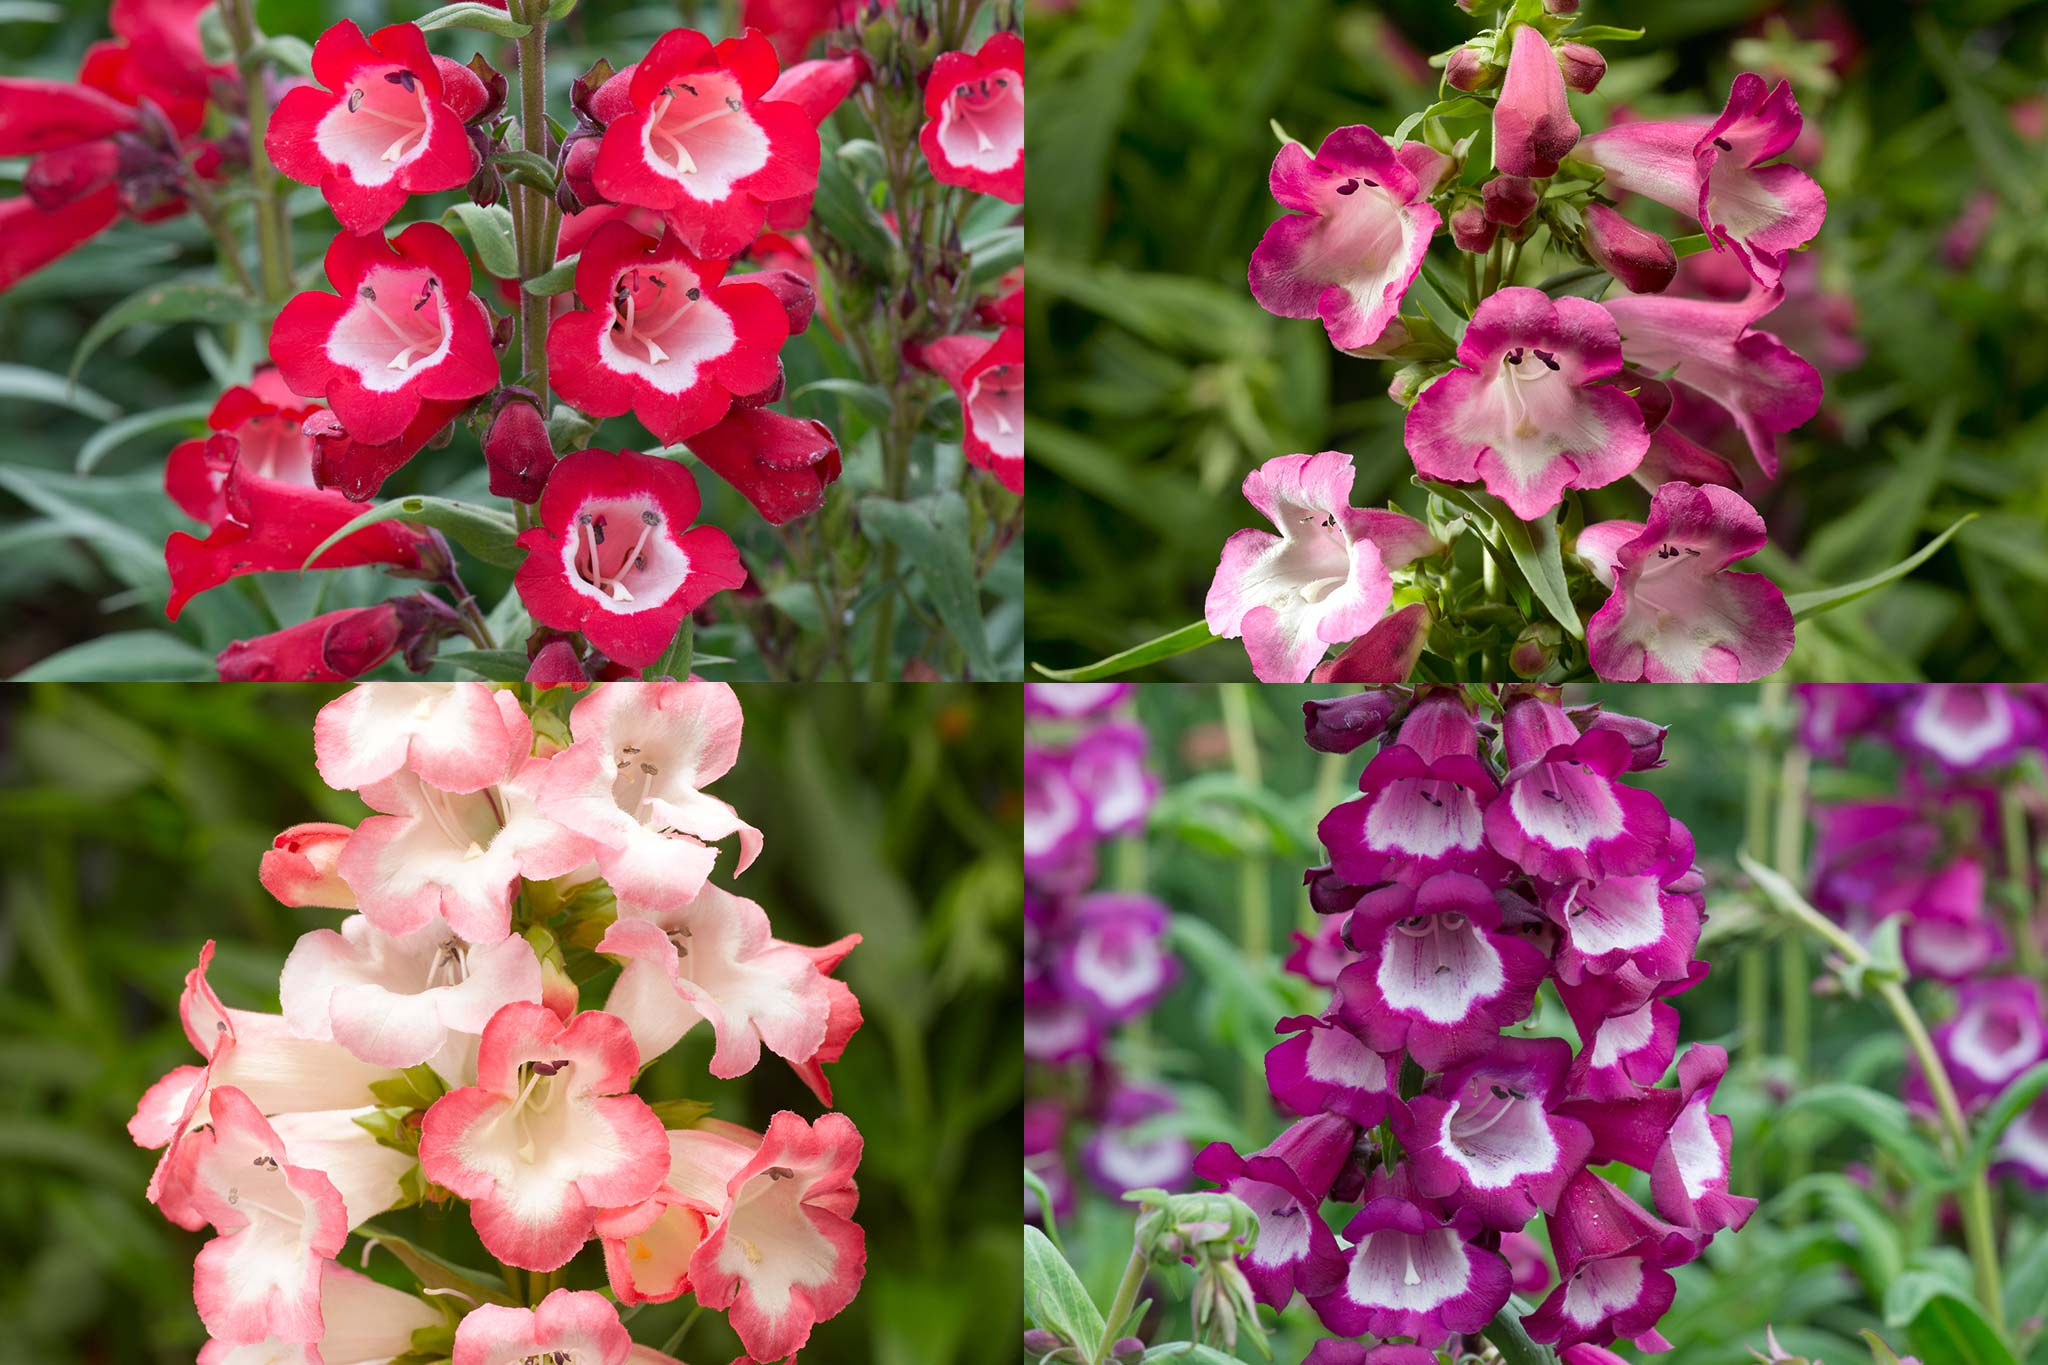 Penstemon flowers